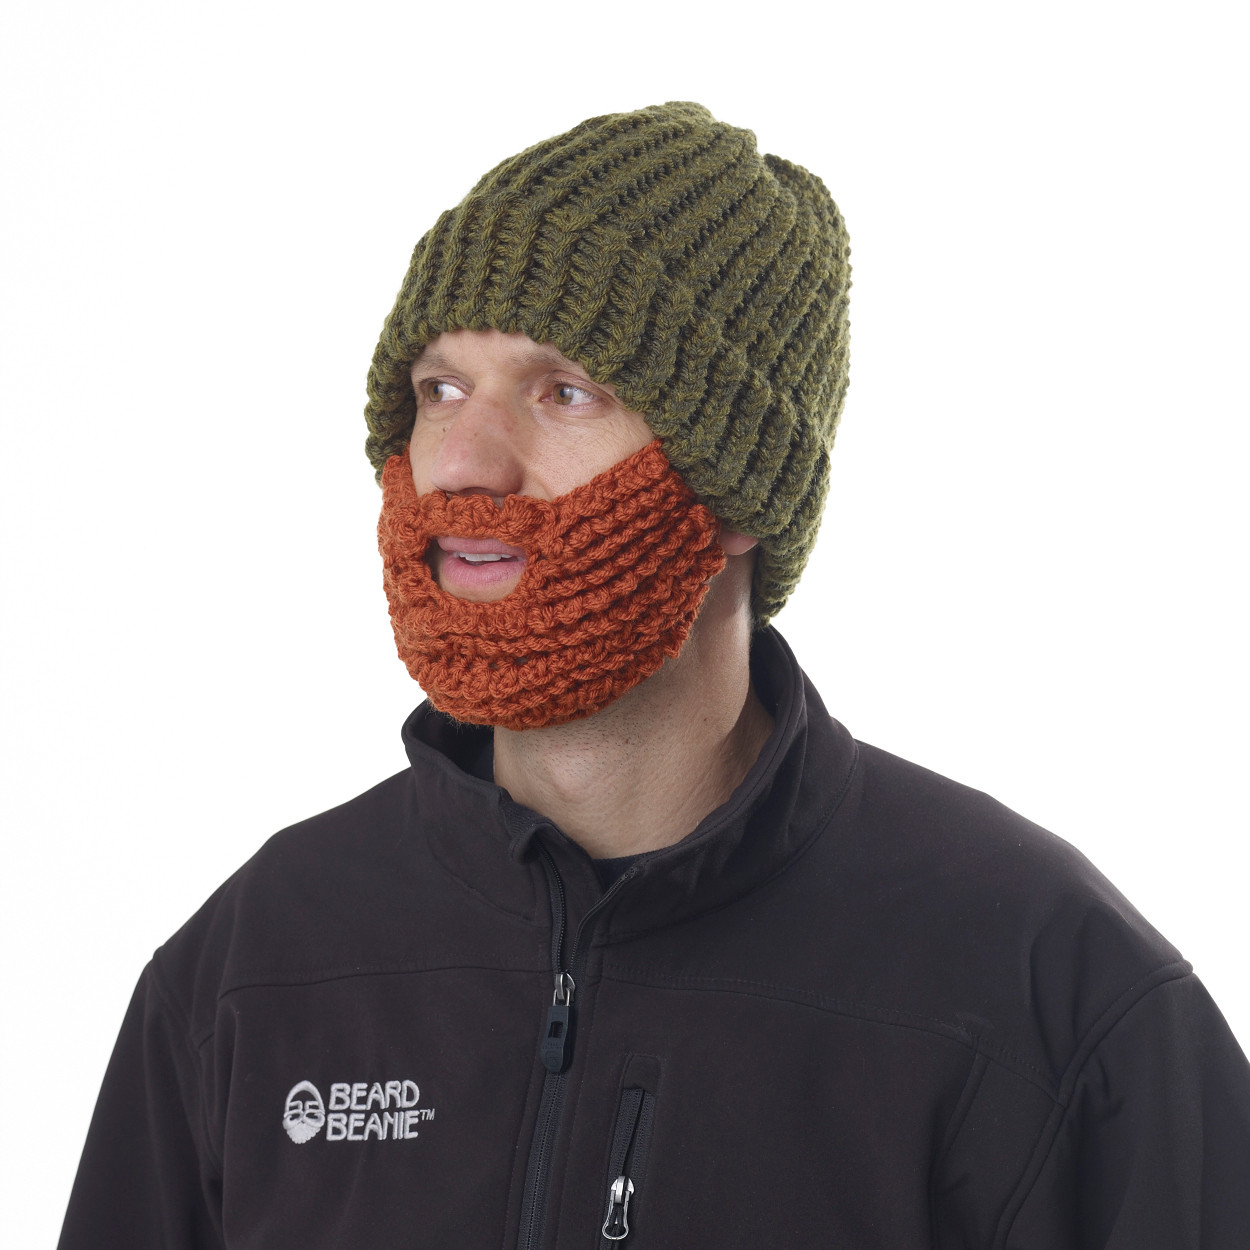 f4e7b791914 ... The Original Beard Beanie™ Green LumberJack 100% Hand Made. Image 1.  Loading zoom